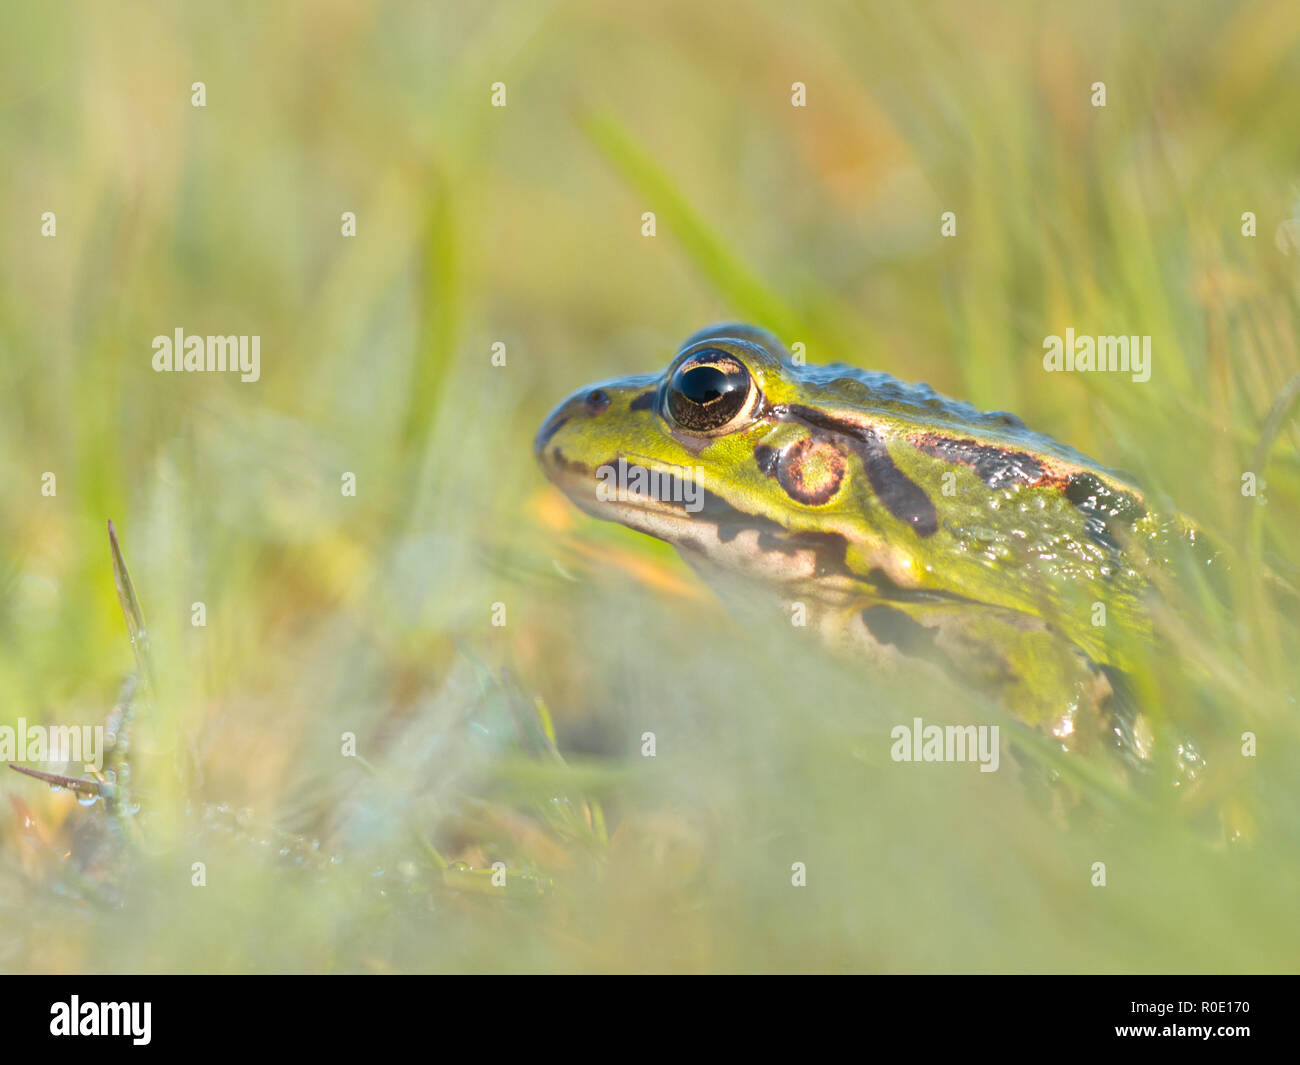 Green frog is hiding in grass with morning dew - Stock Image